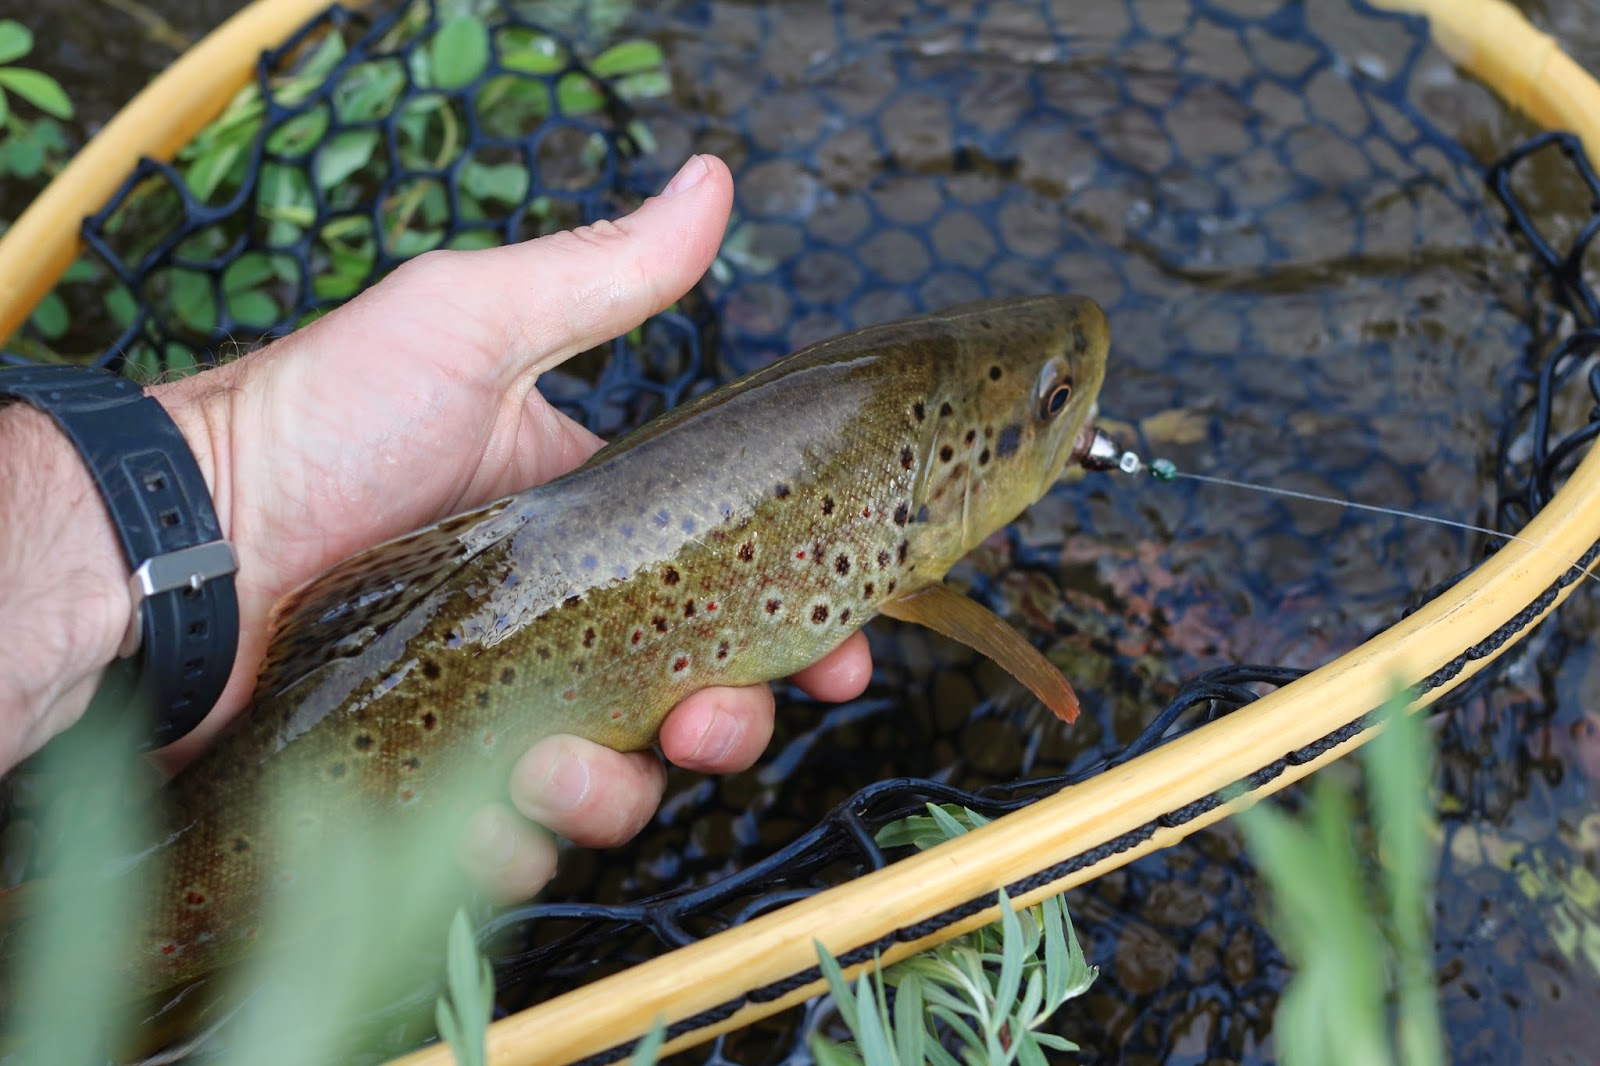 Brown+Trout+with+a+streamer+in+its+mouth+from+the+Roaring+Fork+River+in+Colorado+with+Jay+Scott+Outdoors.JPG